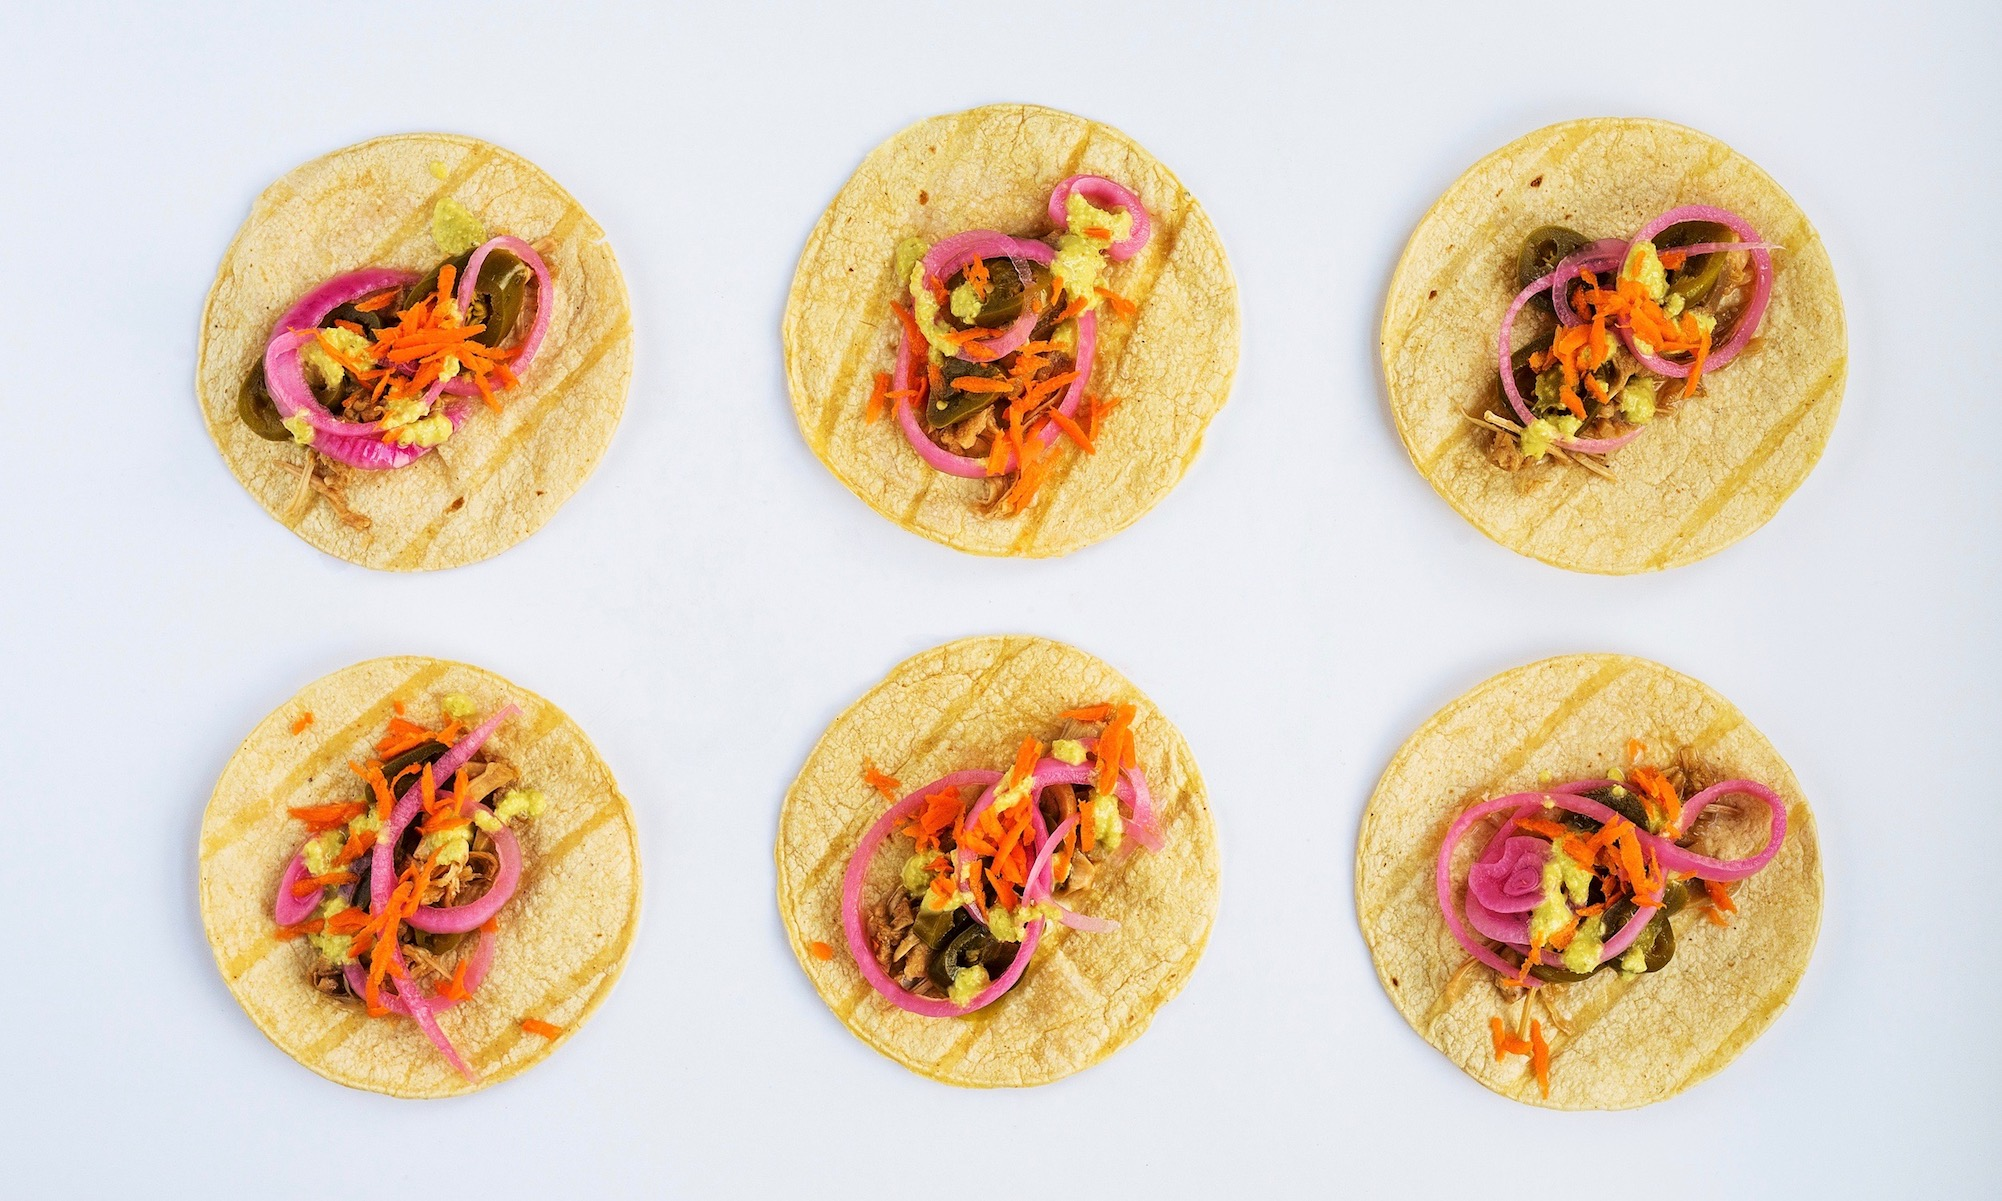 Chili Lime Jackfruit Tacos with Pickled Veggies